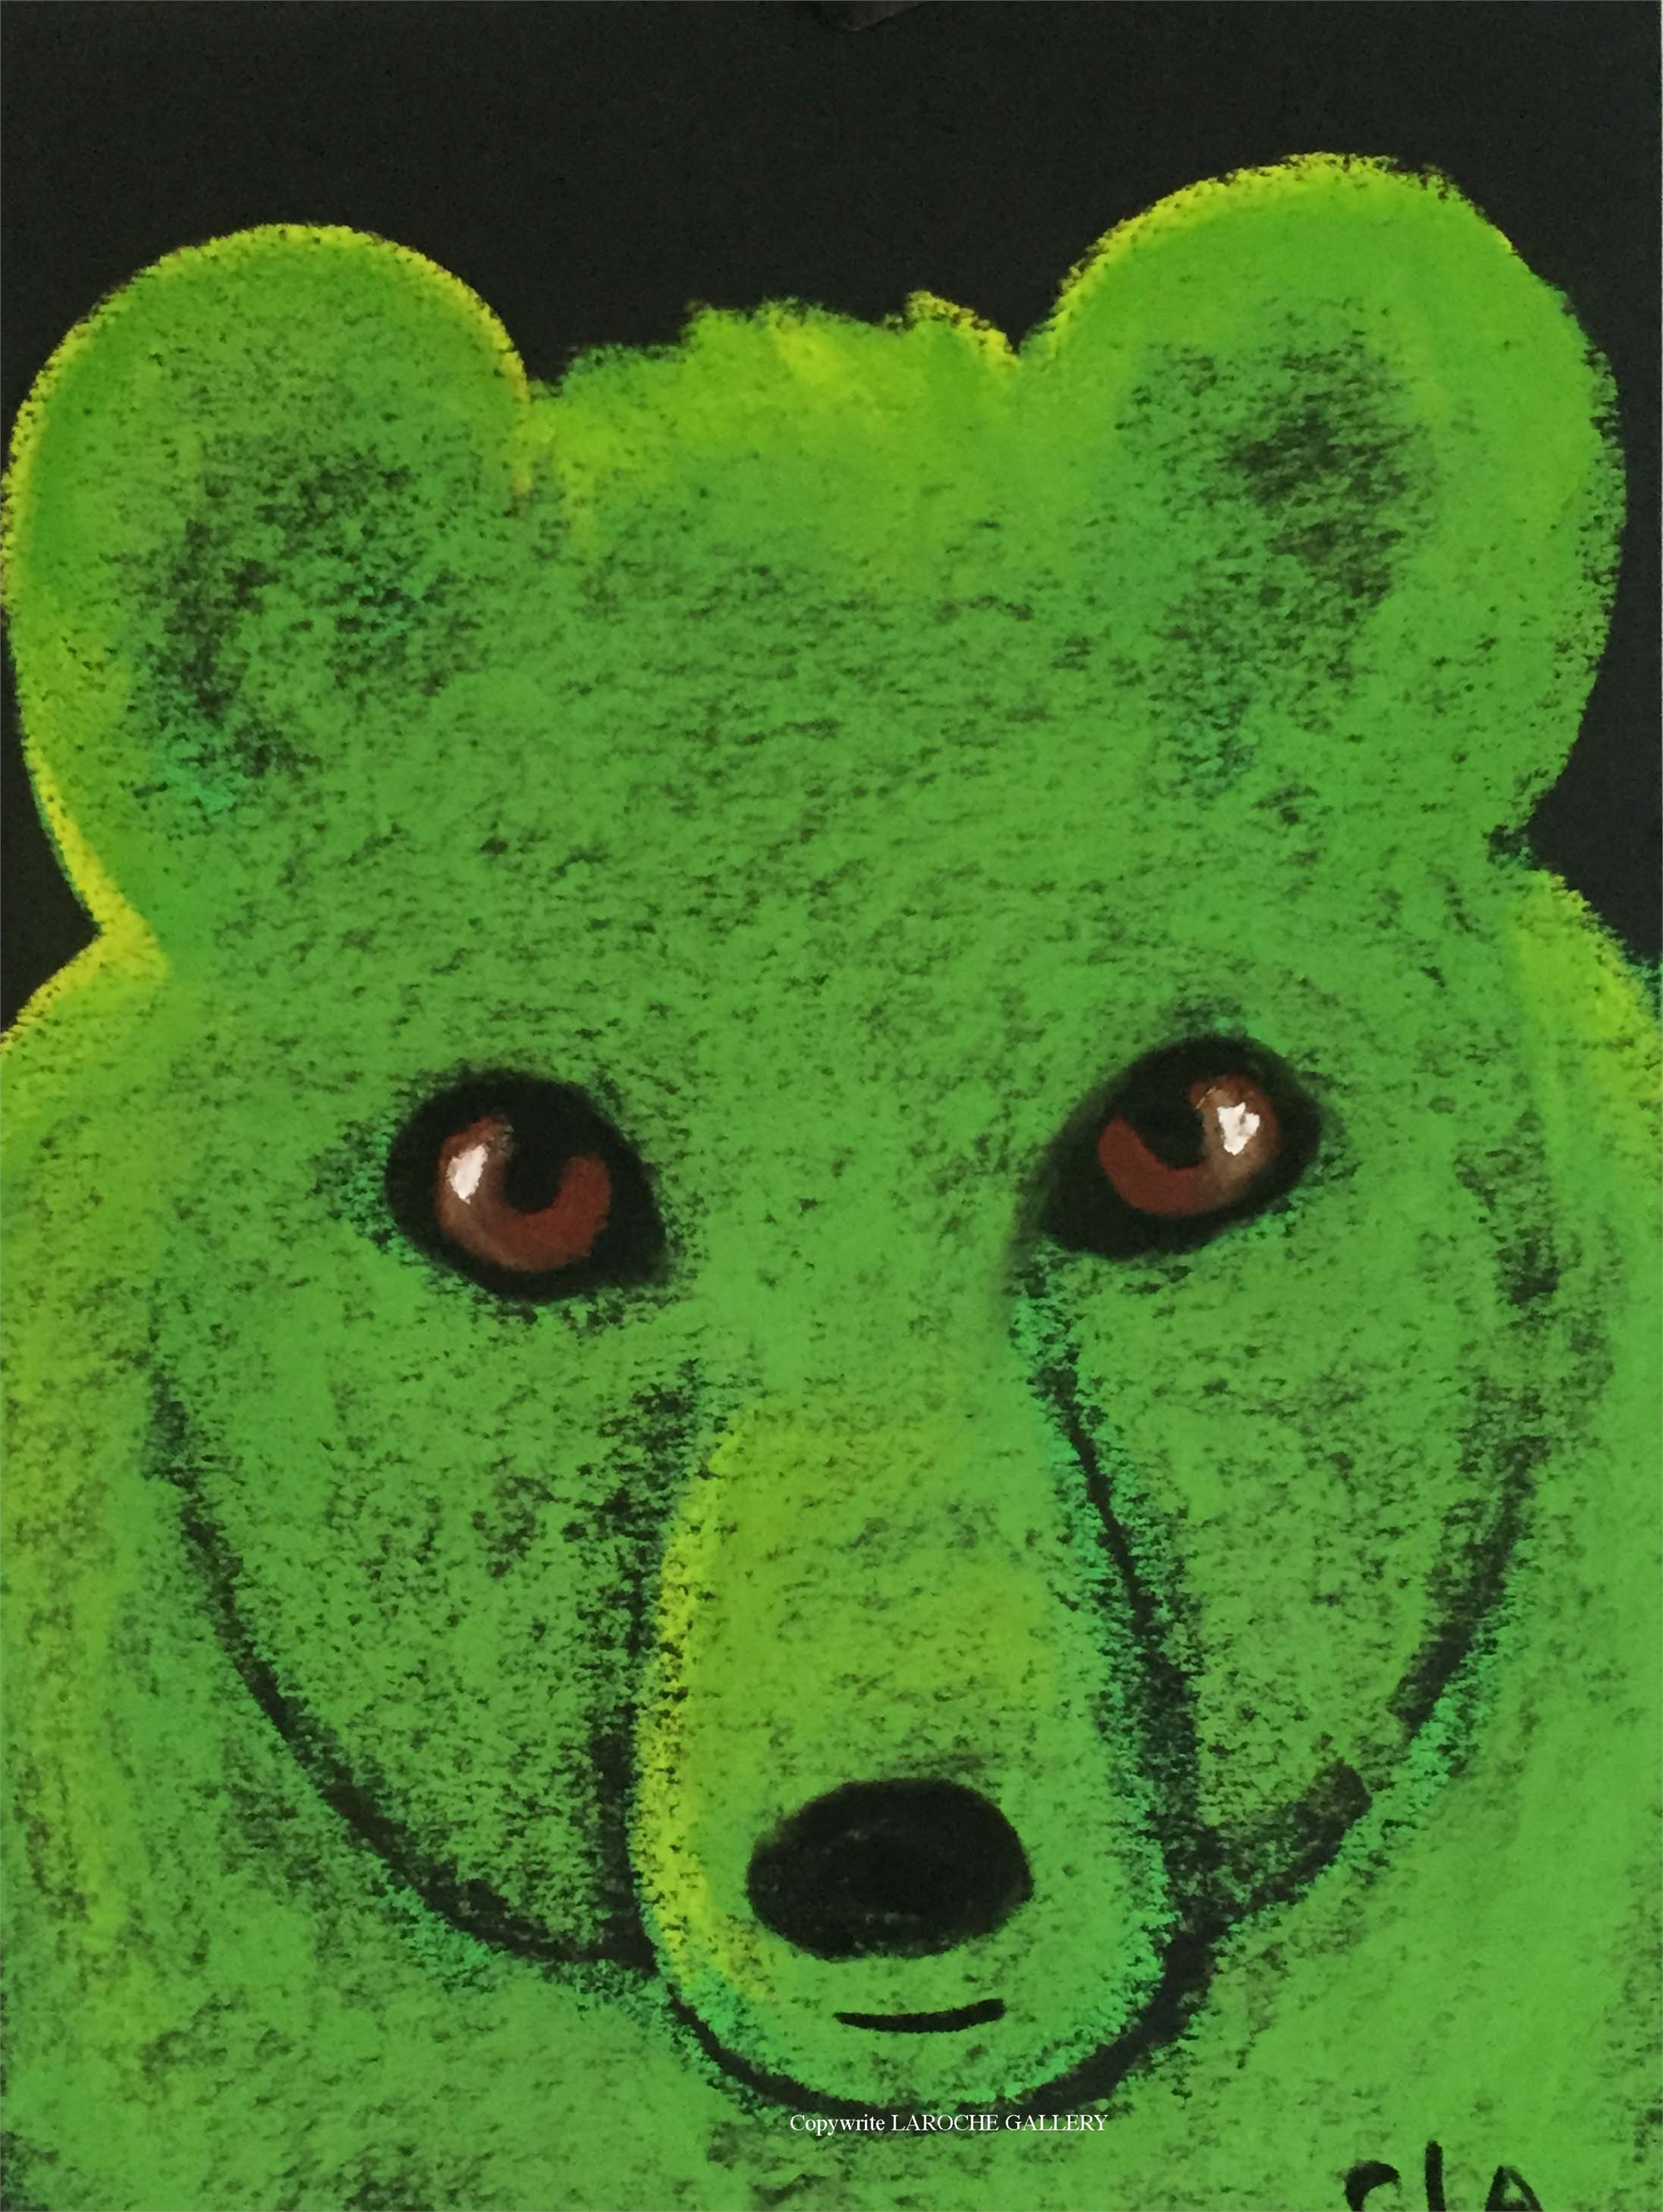 GREEN BEAR by Carole LaRoche